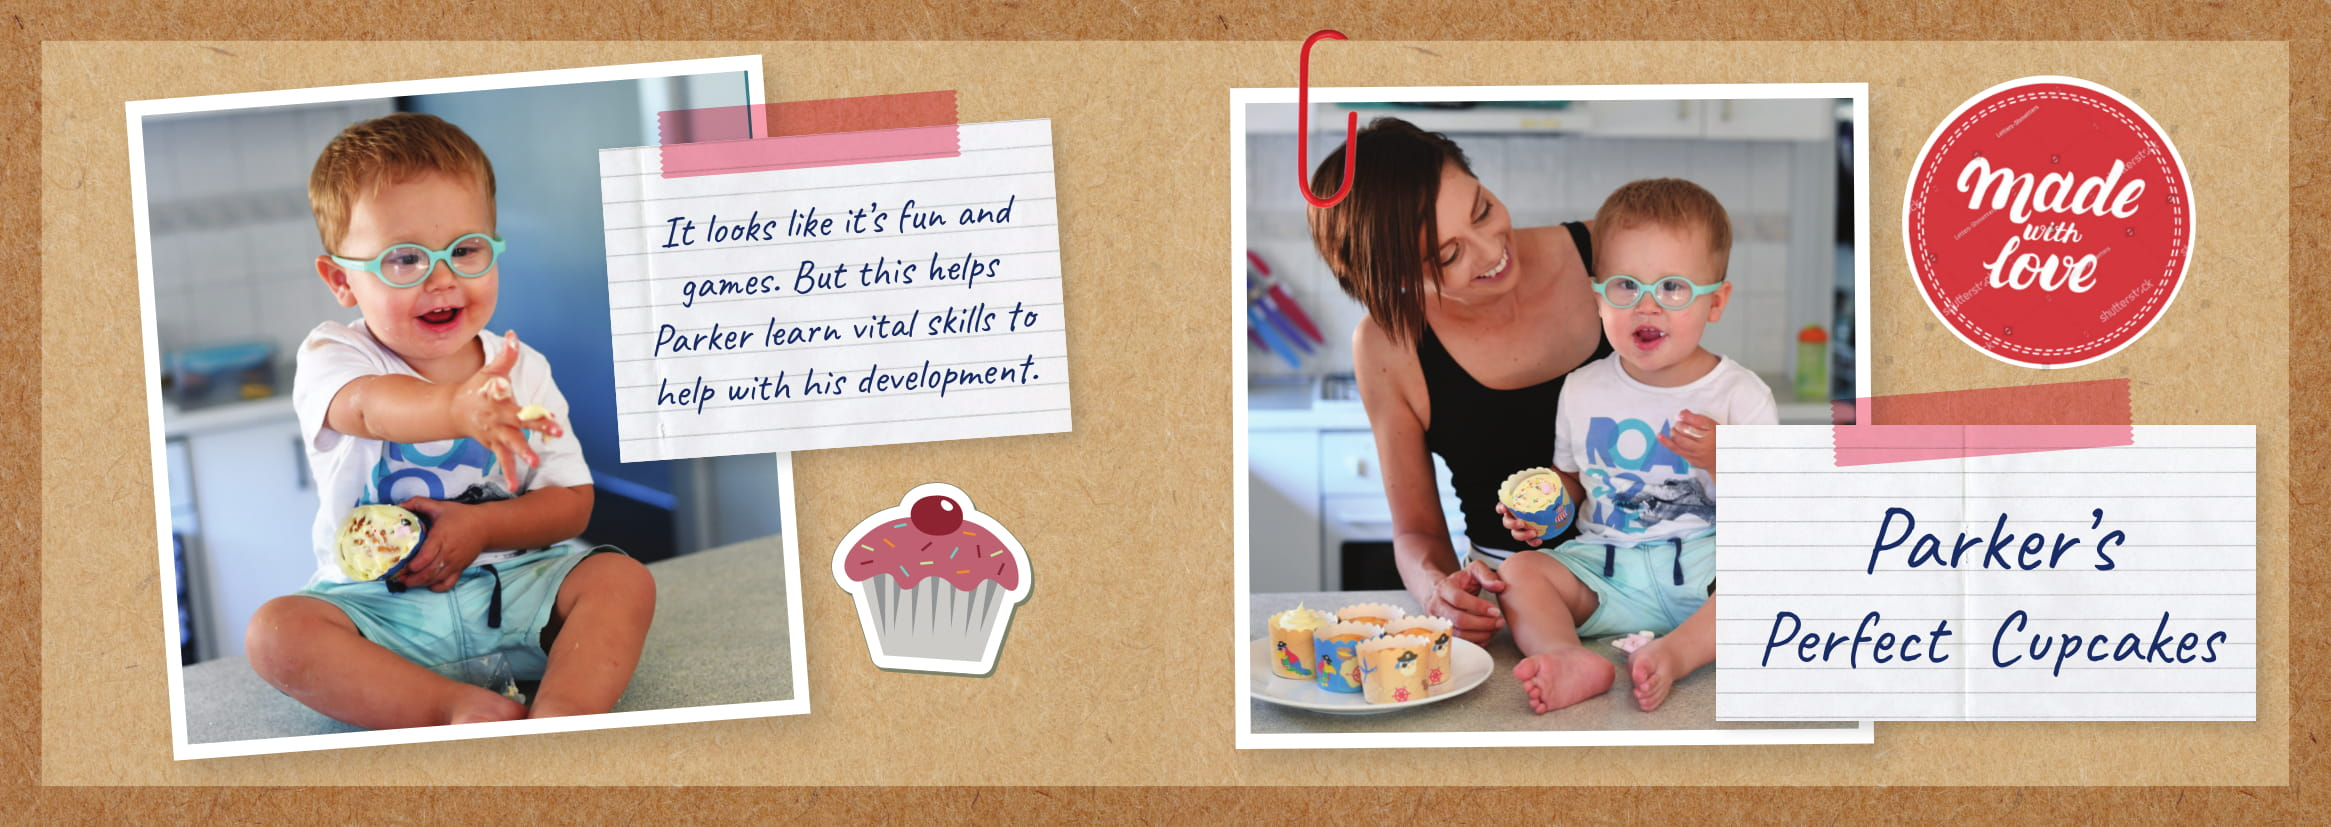 Parker's perfect cupcakes recipe.